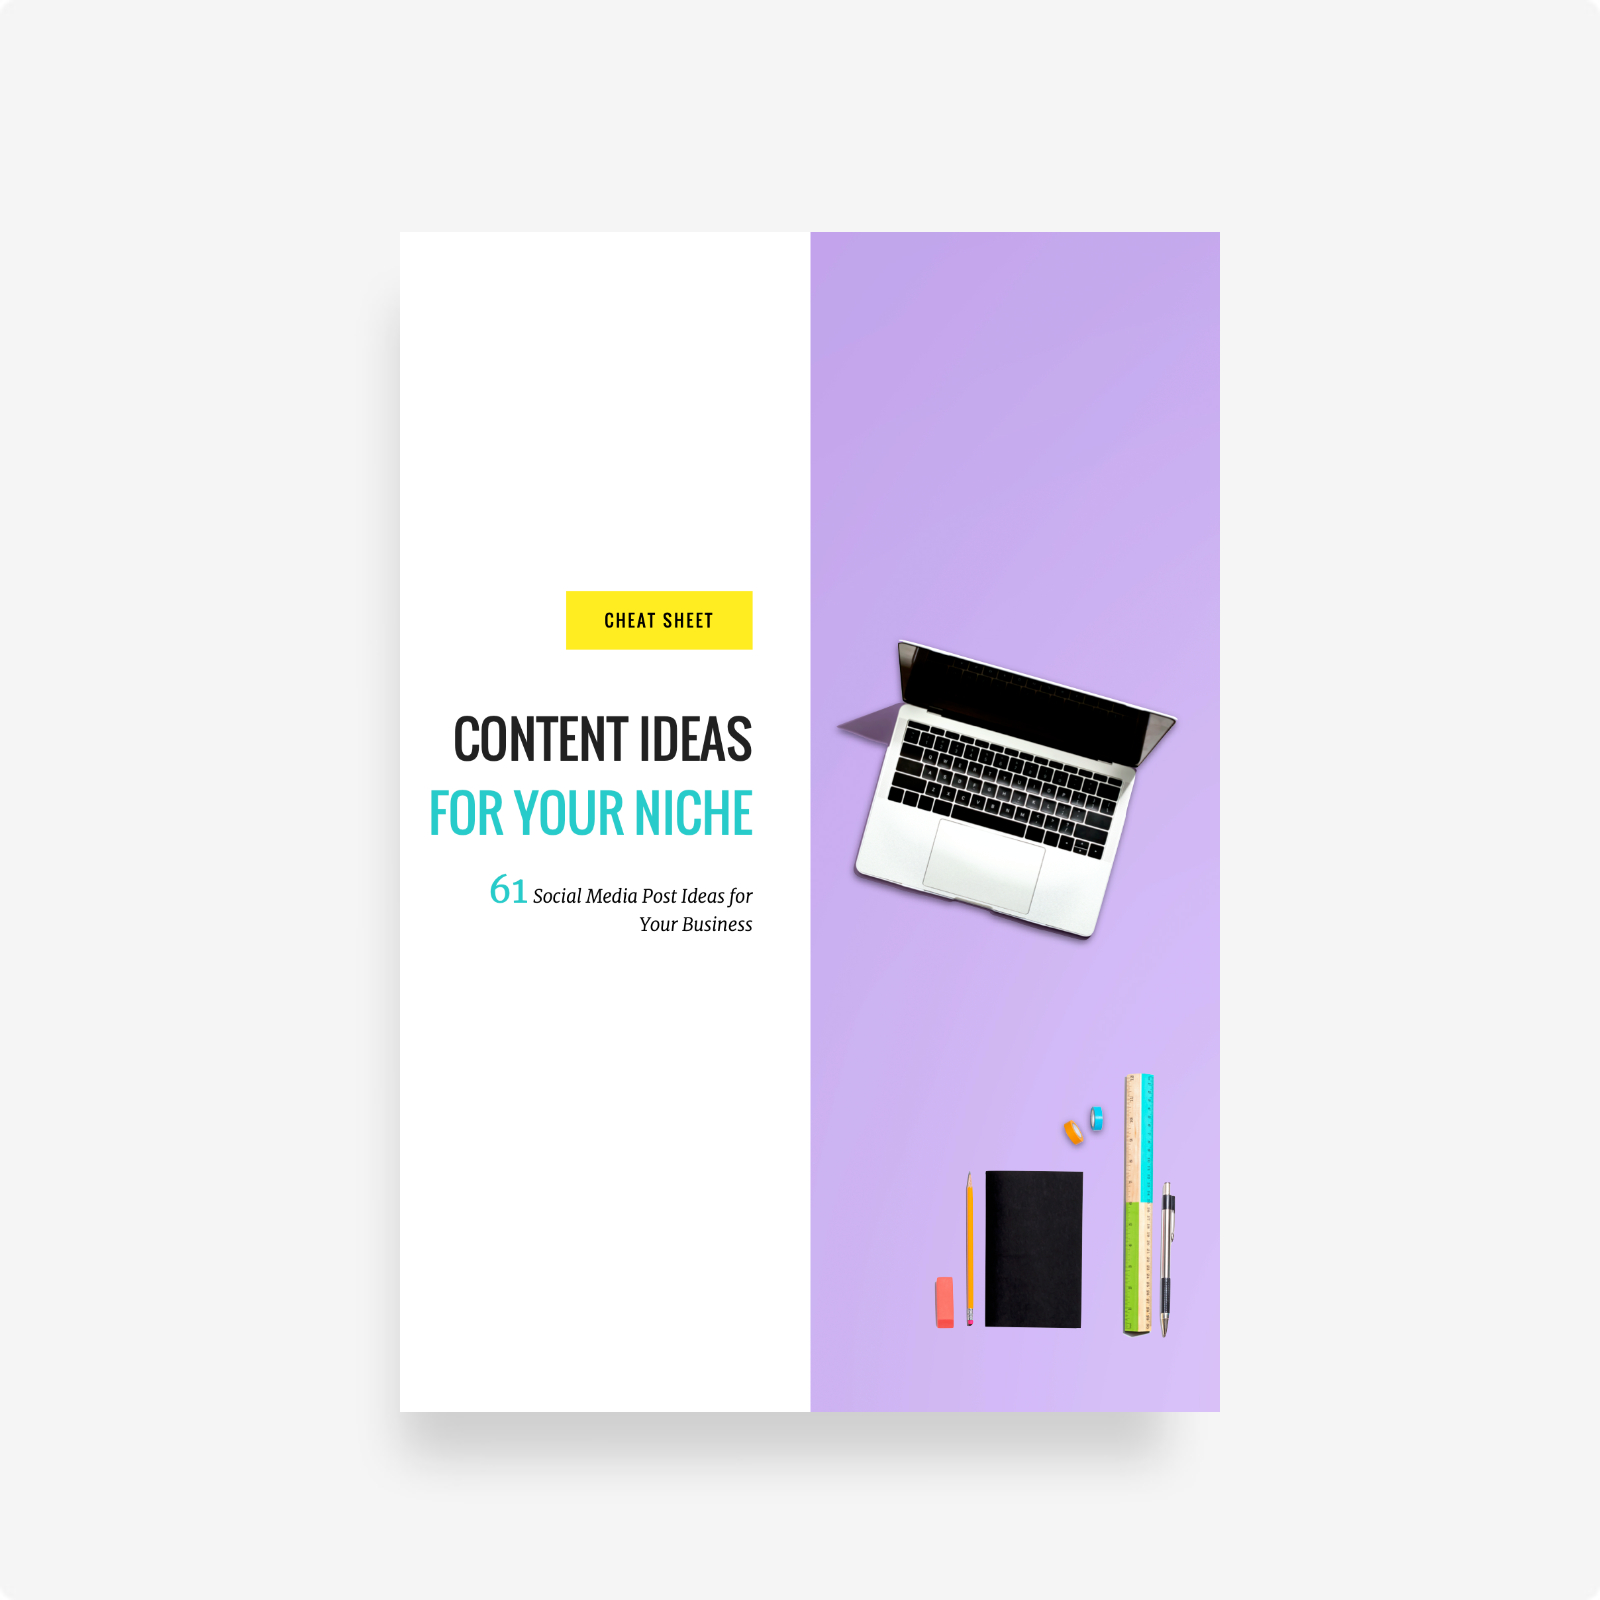 davaii-61-content-ideas-for-your-niche